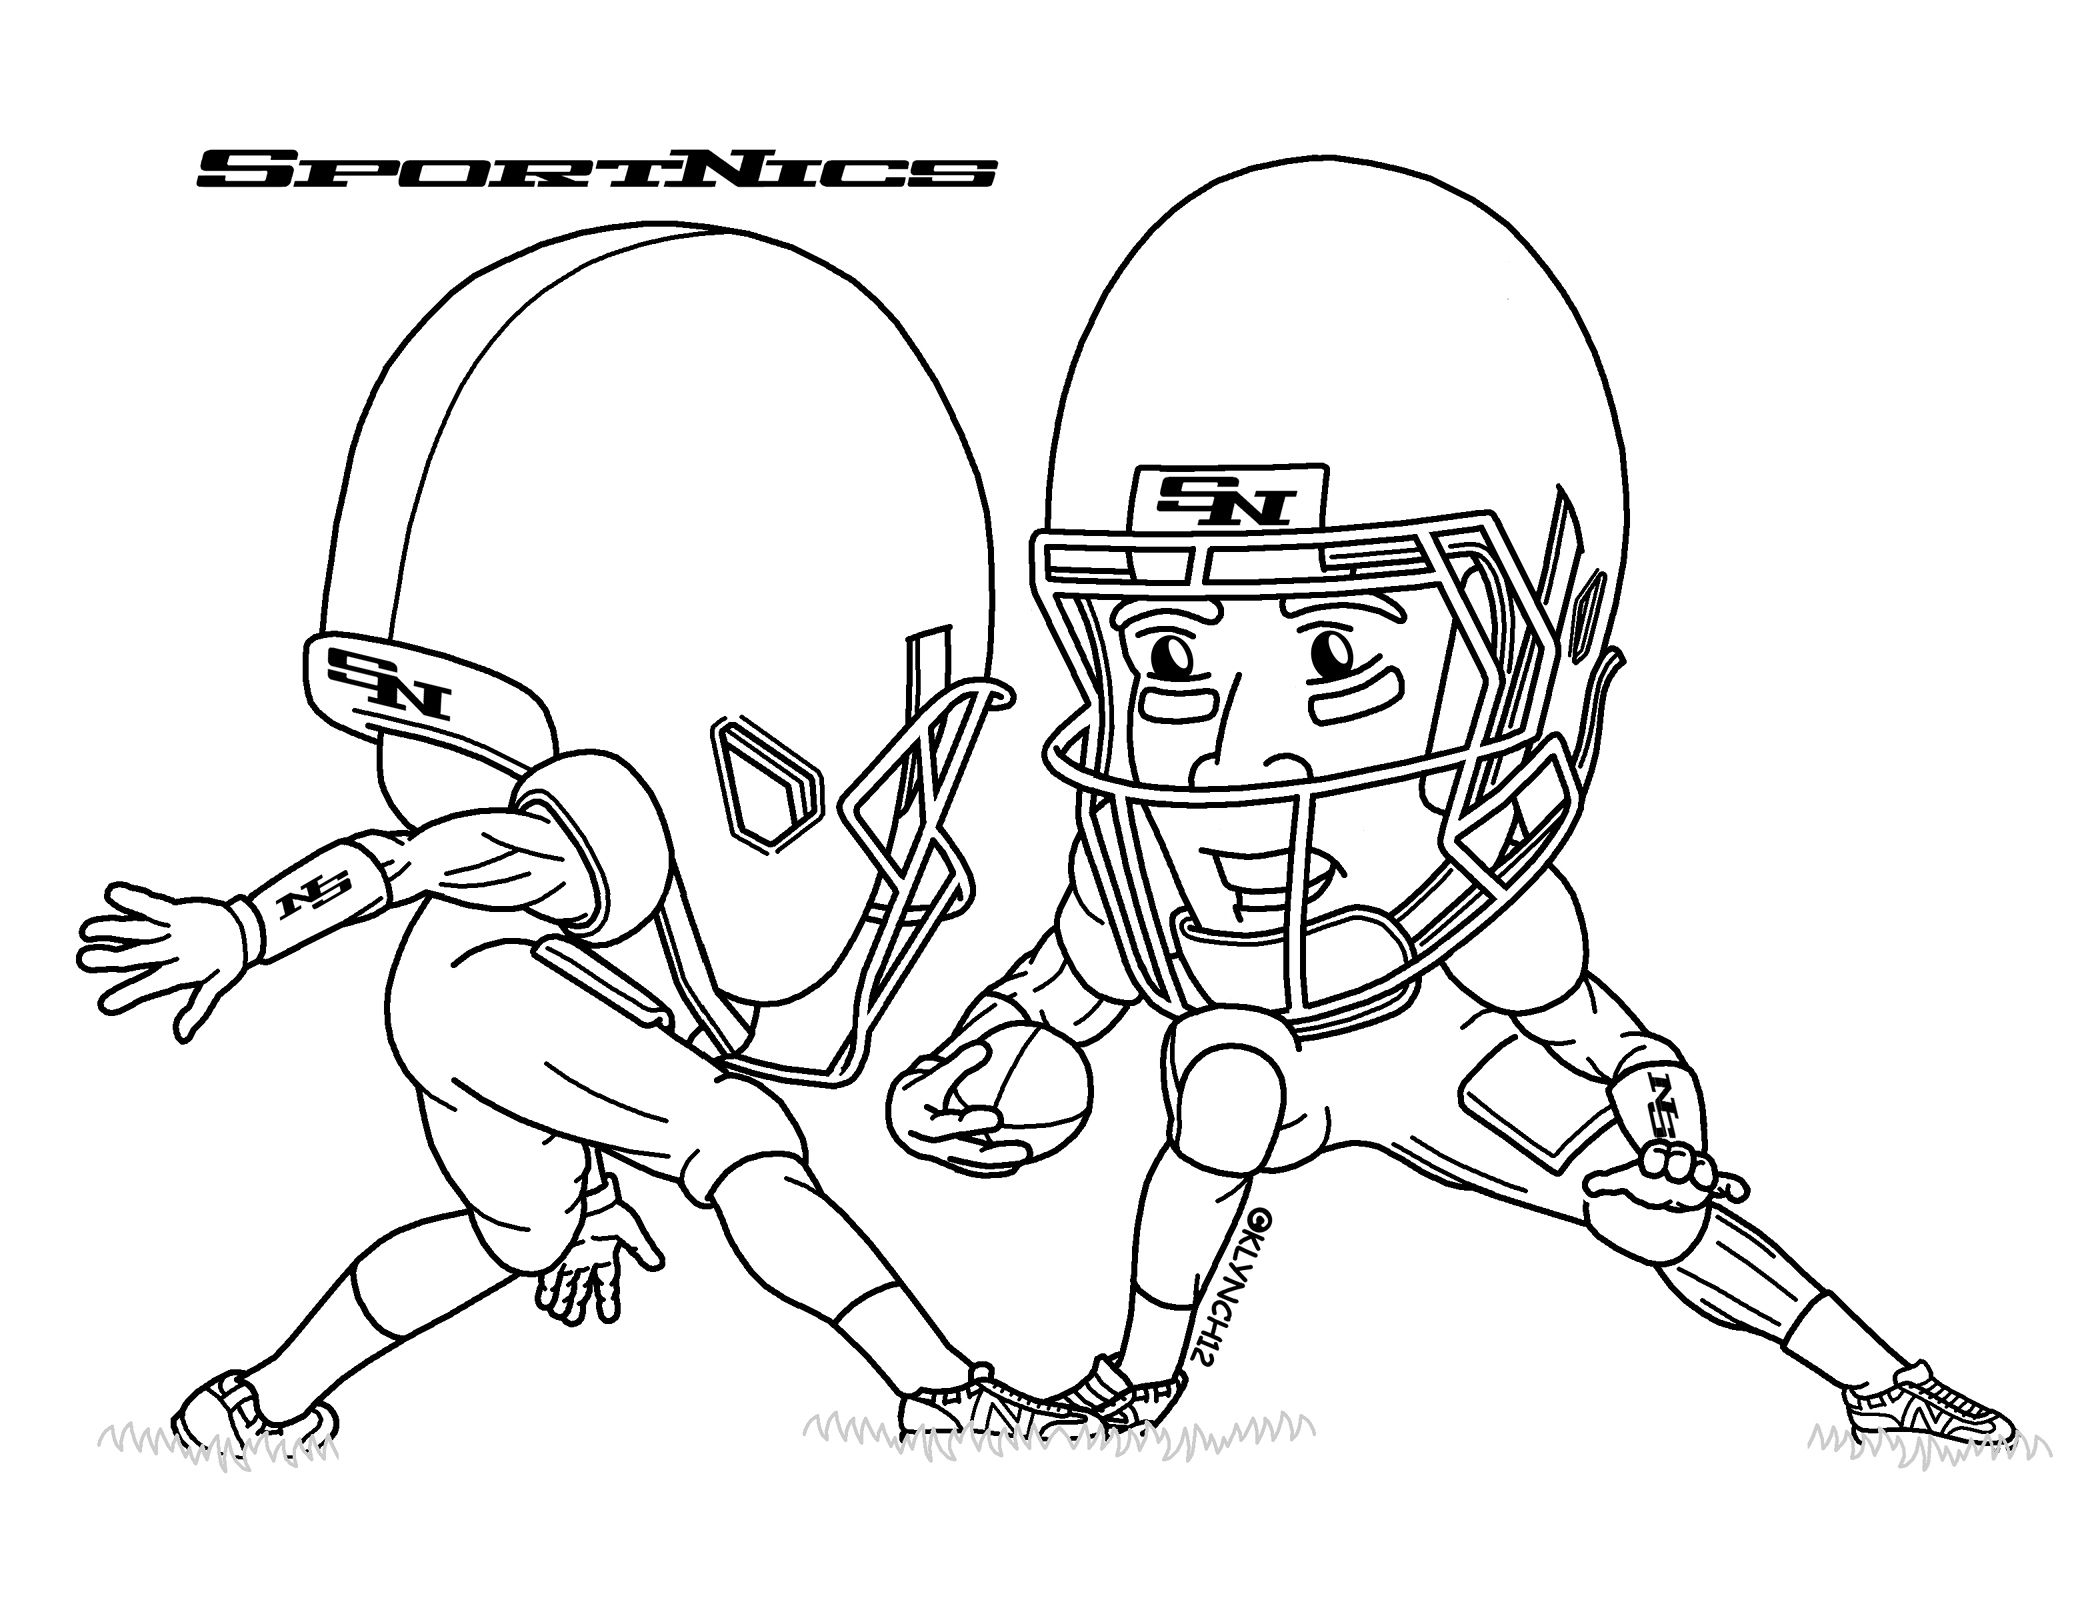 49ers Drawing at GetDrawings.com | Free for personal use 49ers ...